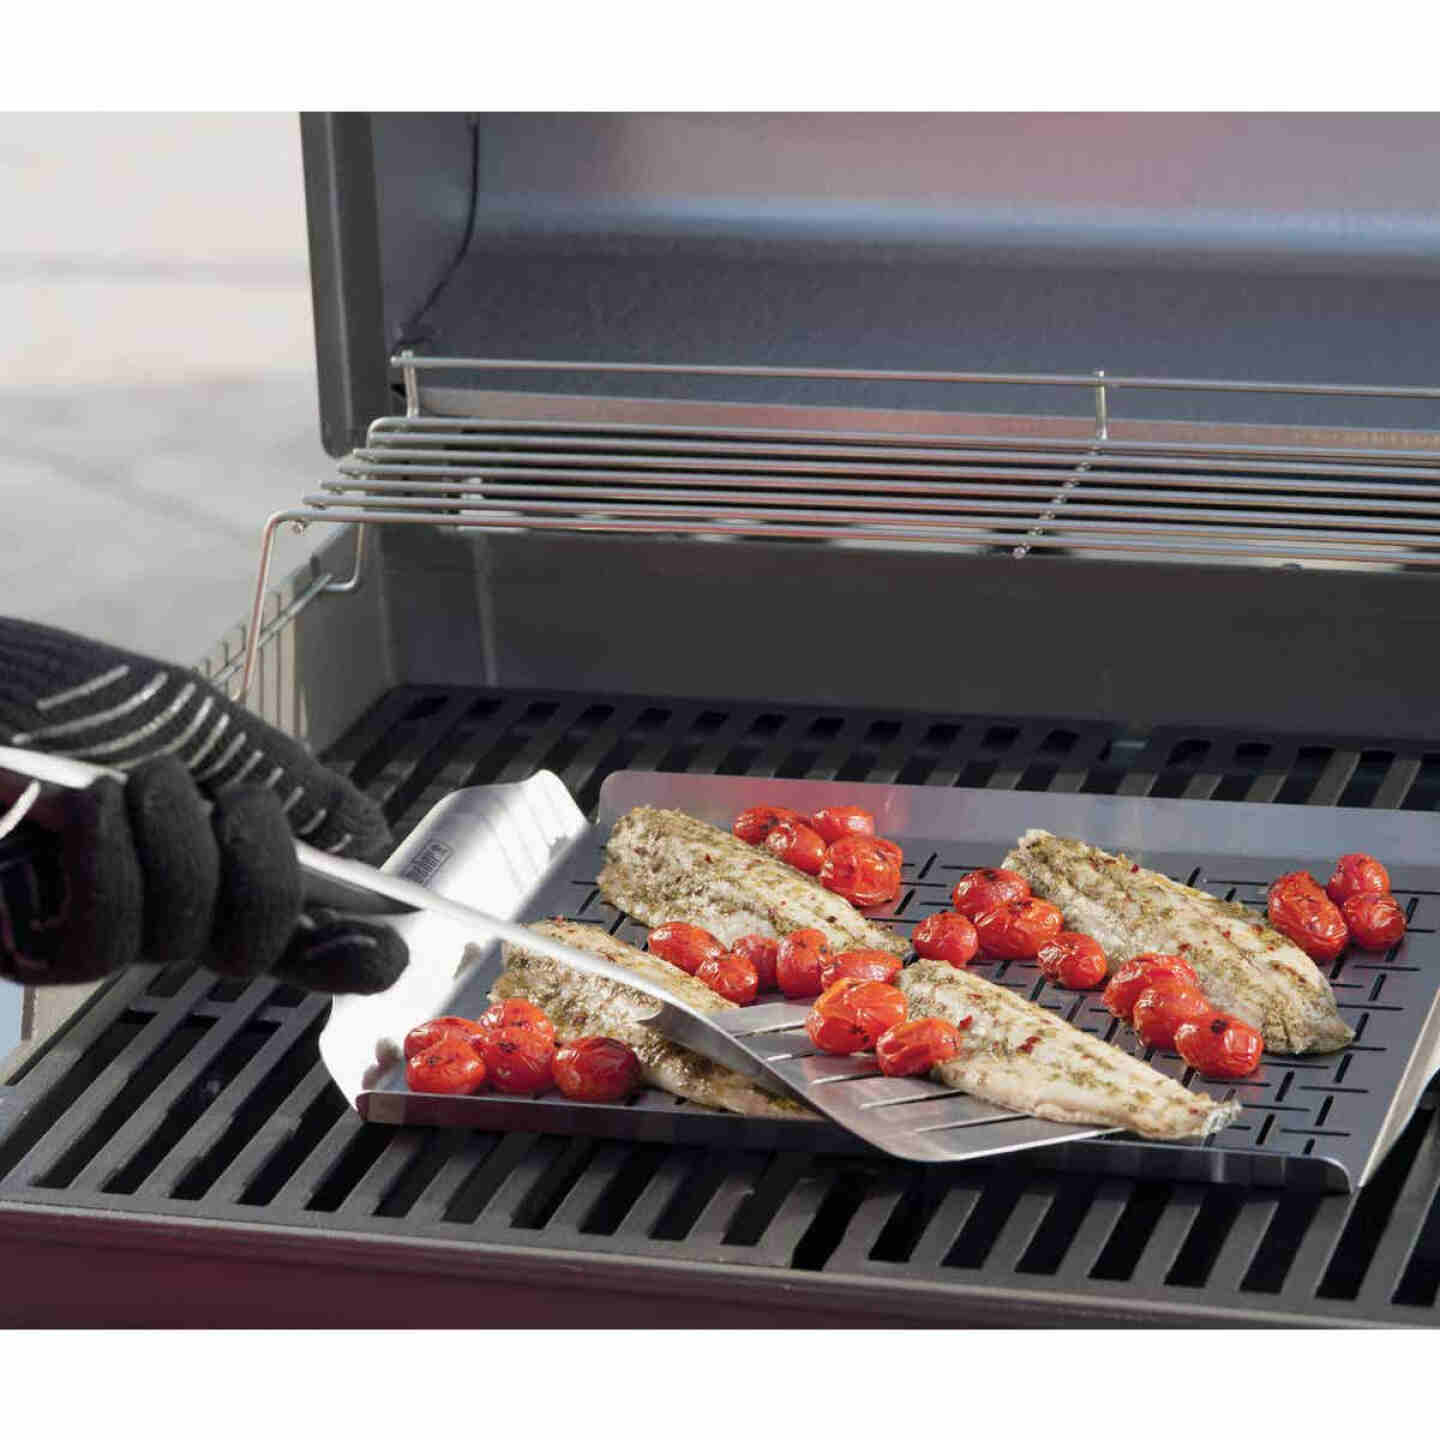 Weber Style Stainless Steel Grill Pan Image 2